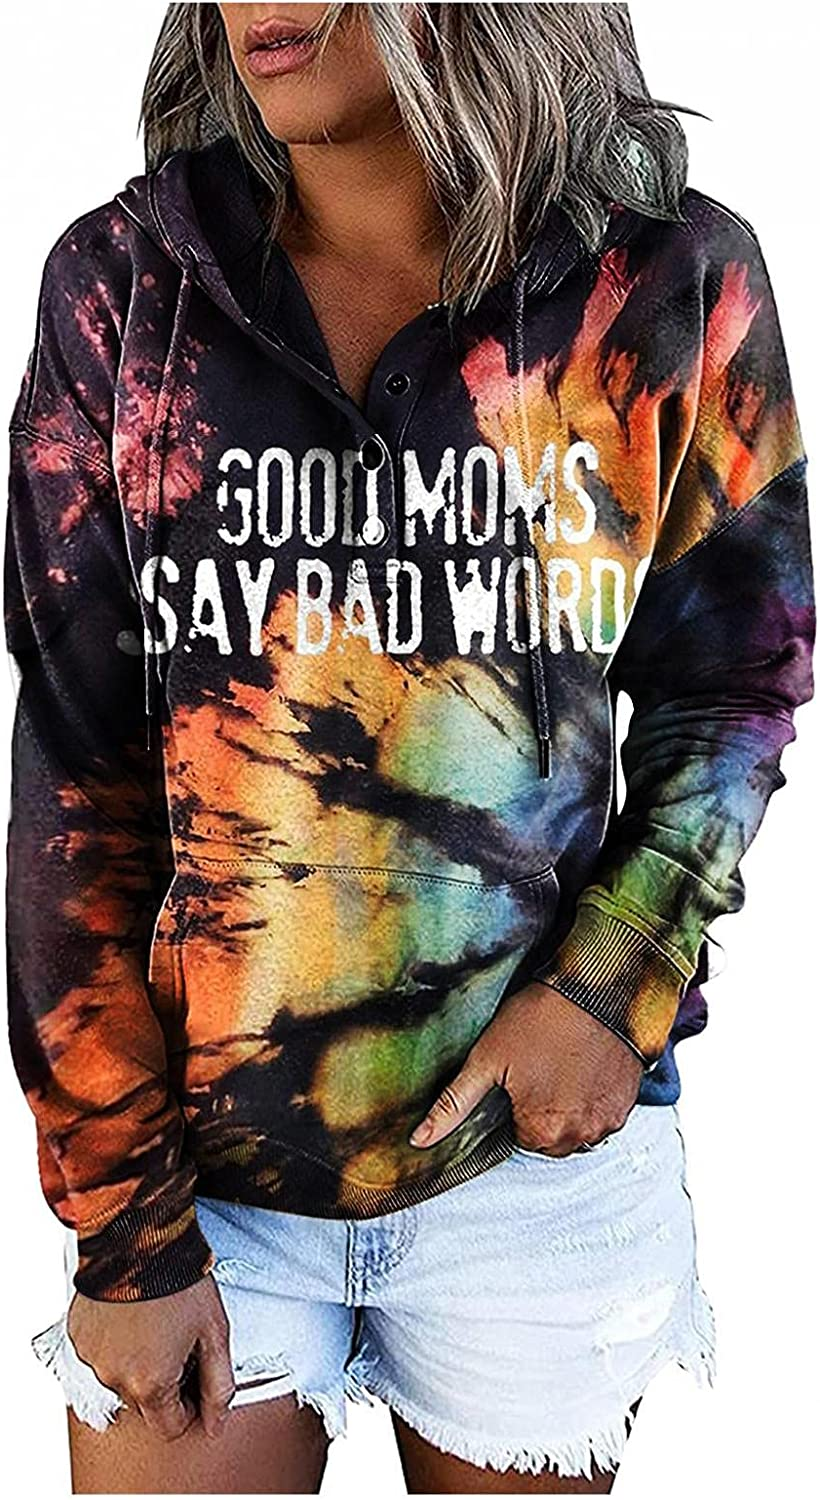 AODONG Hoodies for Women Rainbow Tie Dye Button Down Hooded Sweatshirts Casual Long Sleeve Pullover Tops with Pocket